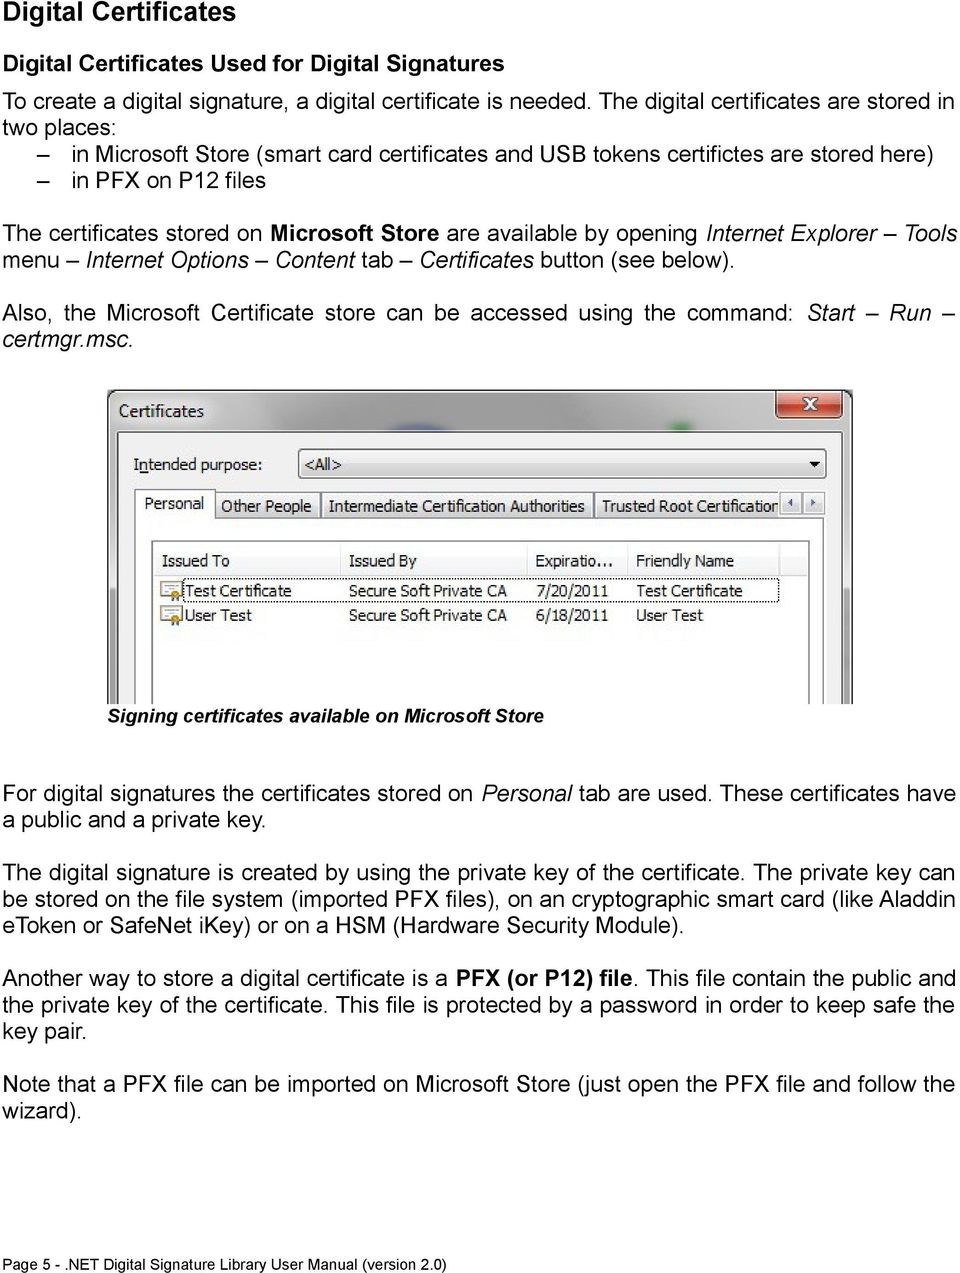 Net Digital Signature Library User Manual Pdf